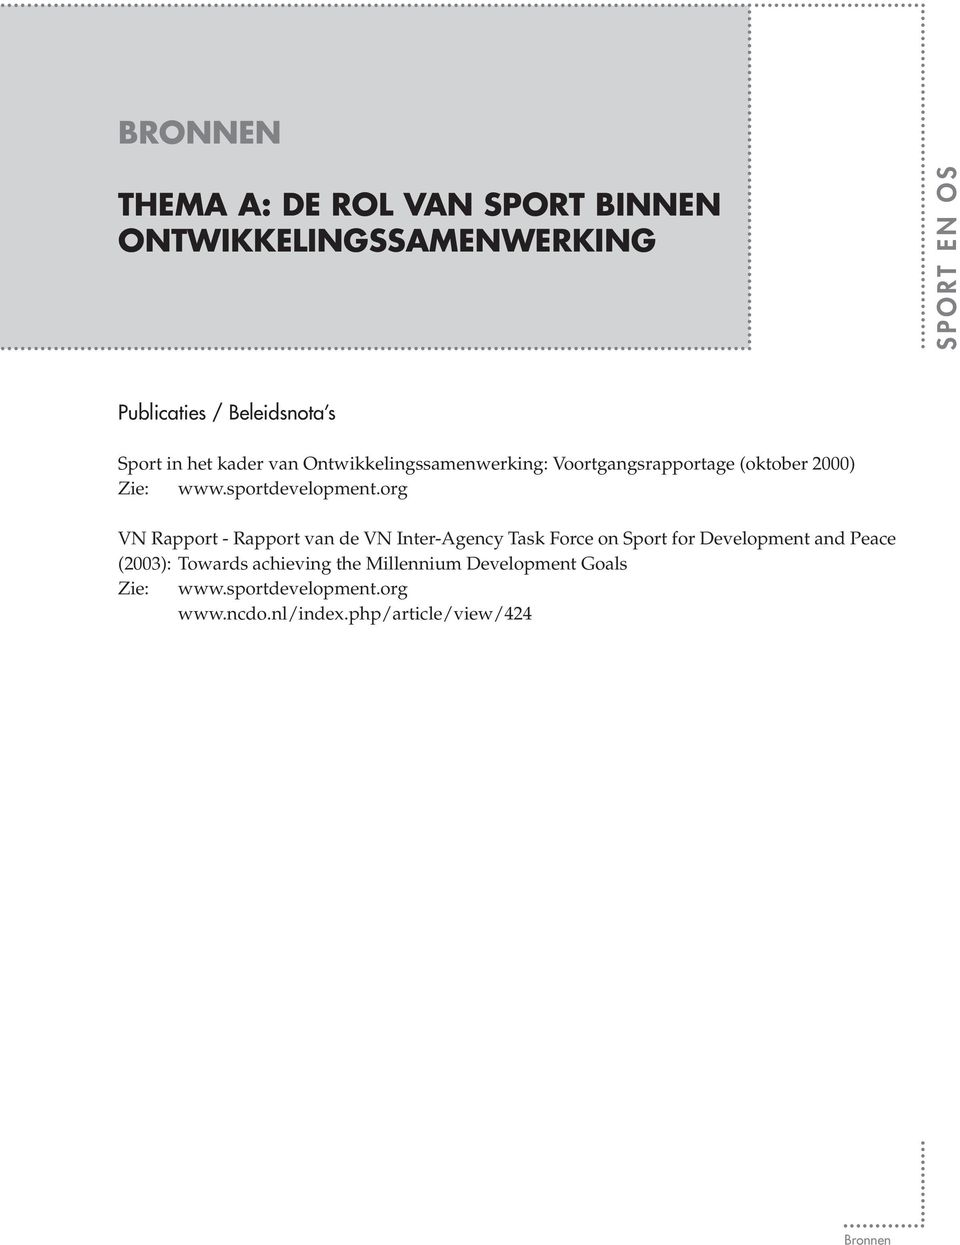 org VN Rapport - Rapport van de VN Inter-Agency Task Force on Sport for Development and Peace (2003):